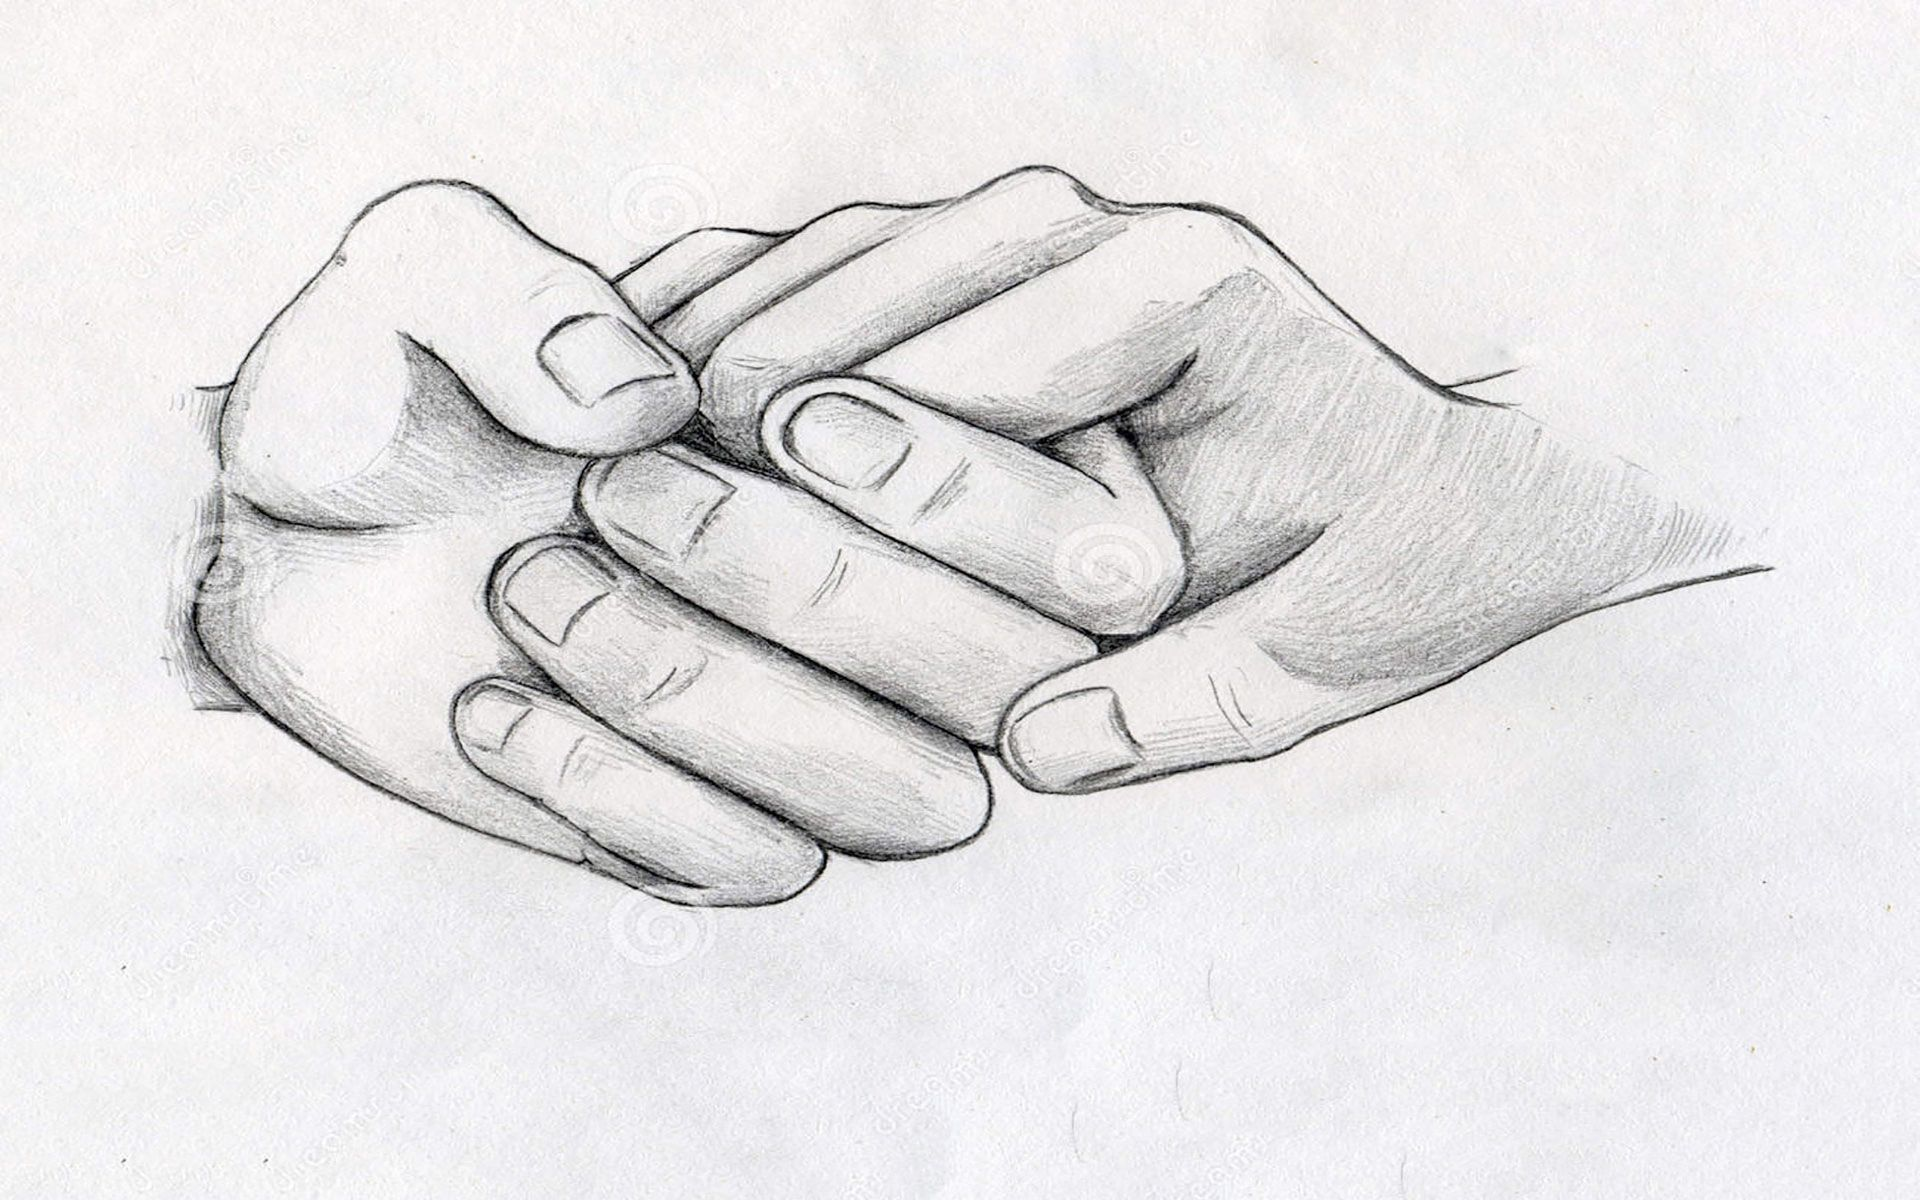 Romantic Pencil Sketch Photos Download